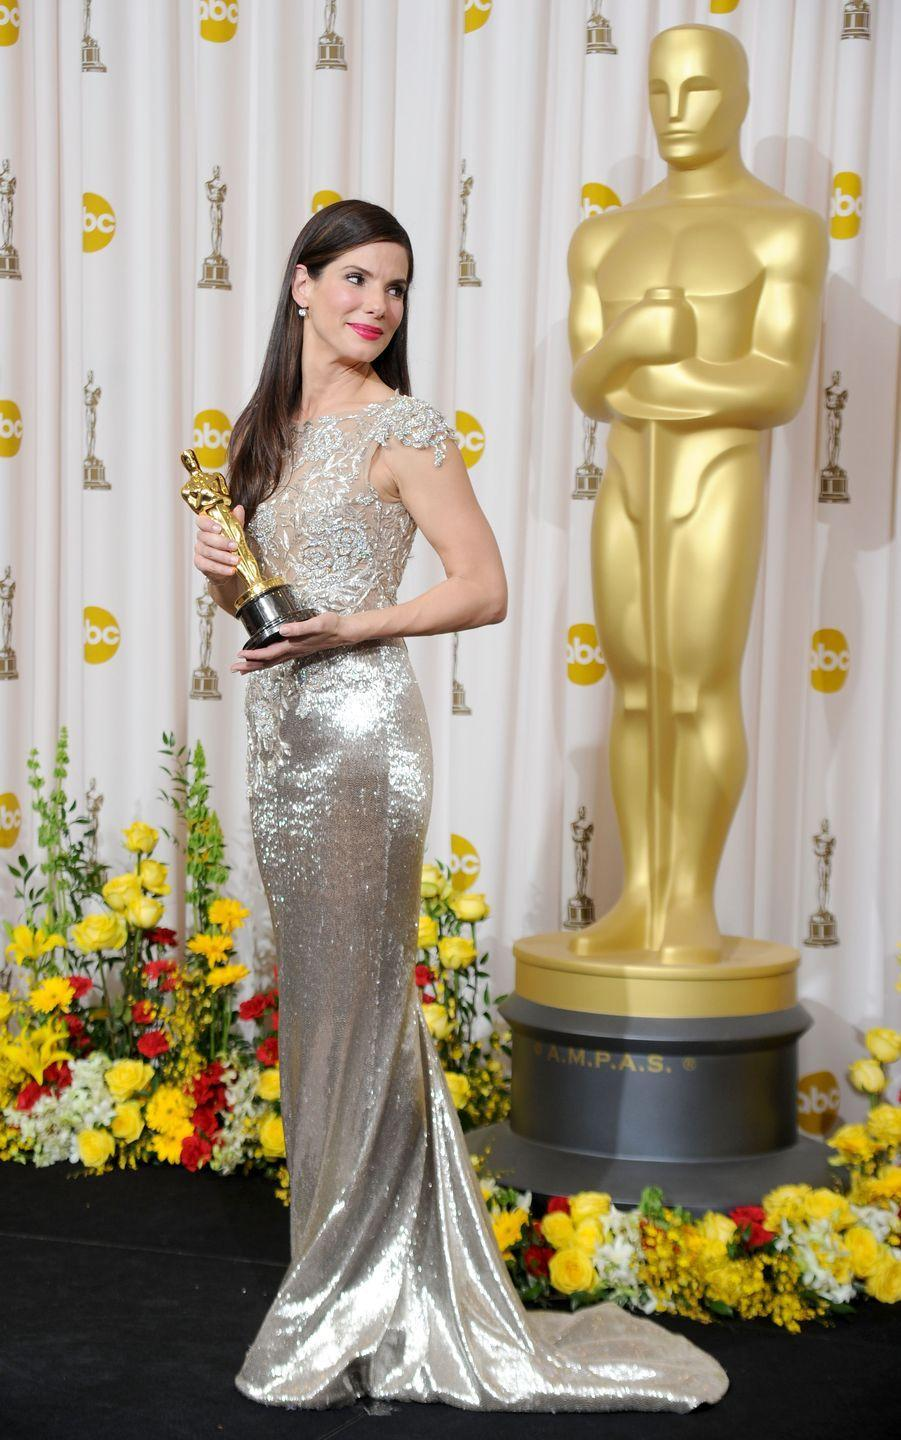 <p>The actress shined in this mermaid gown paired with sleek, straight hair and a bright red lip. She won her long-awaited Oscar for Best Actress in <em>The Blind Side </em>that night.</p>